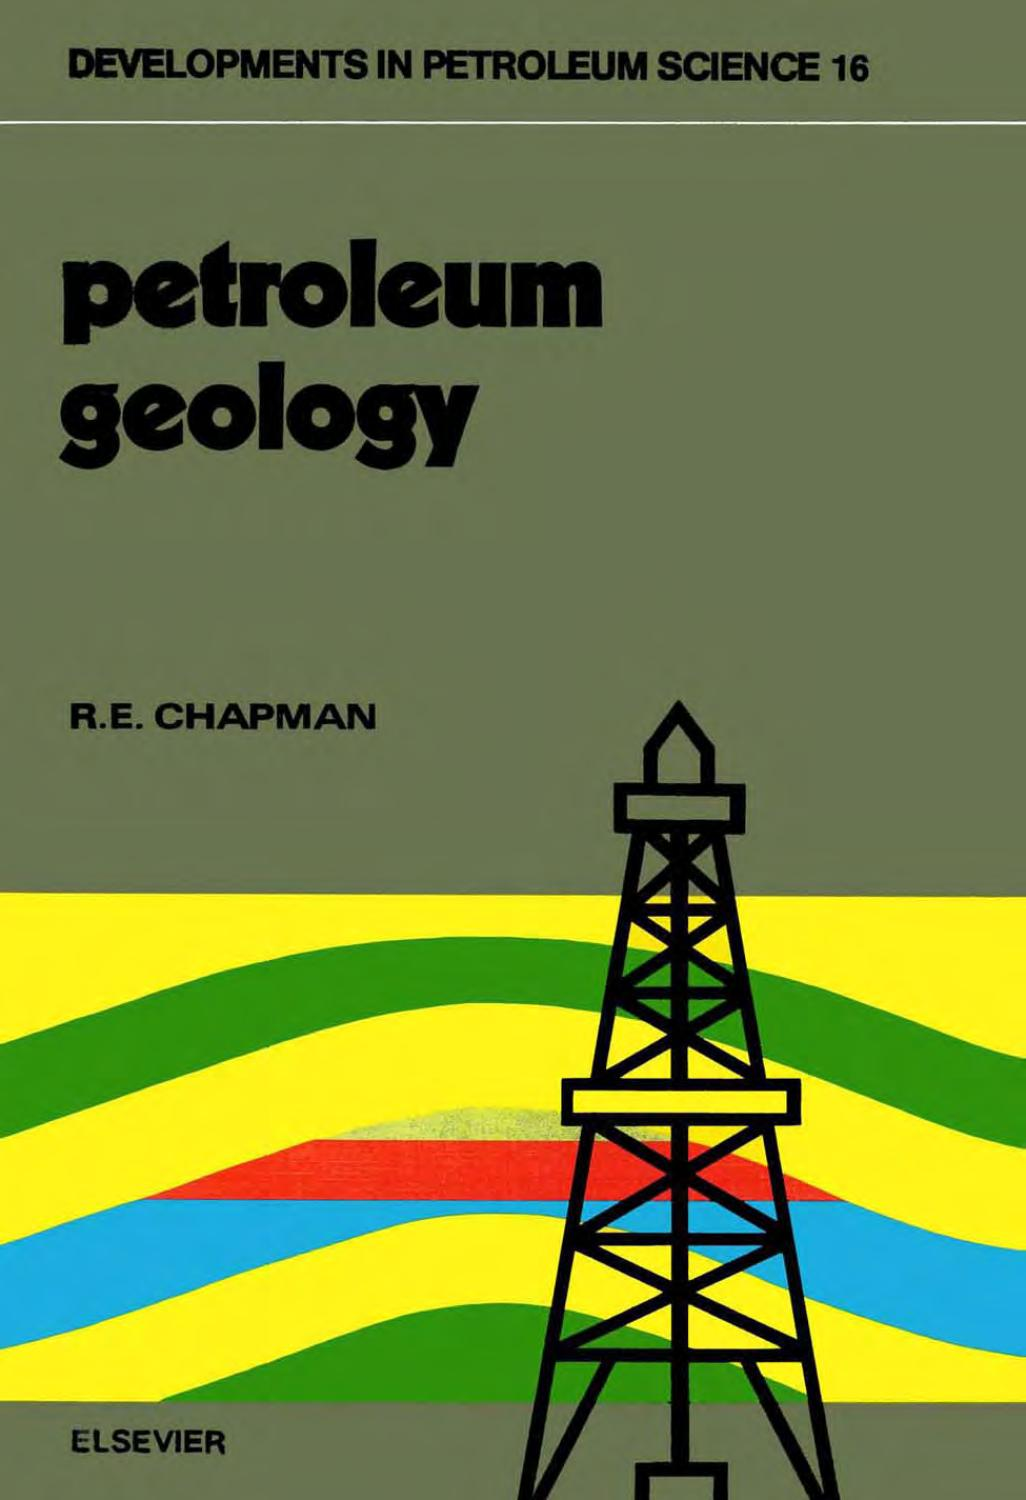 petroleum geology  ned spe student chapter issuu